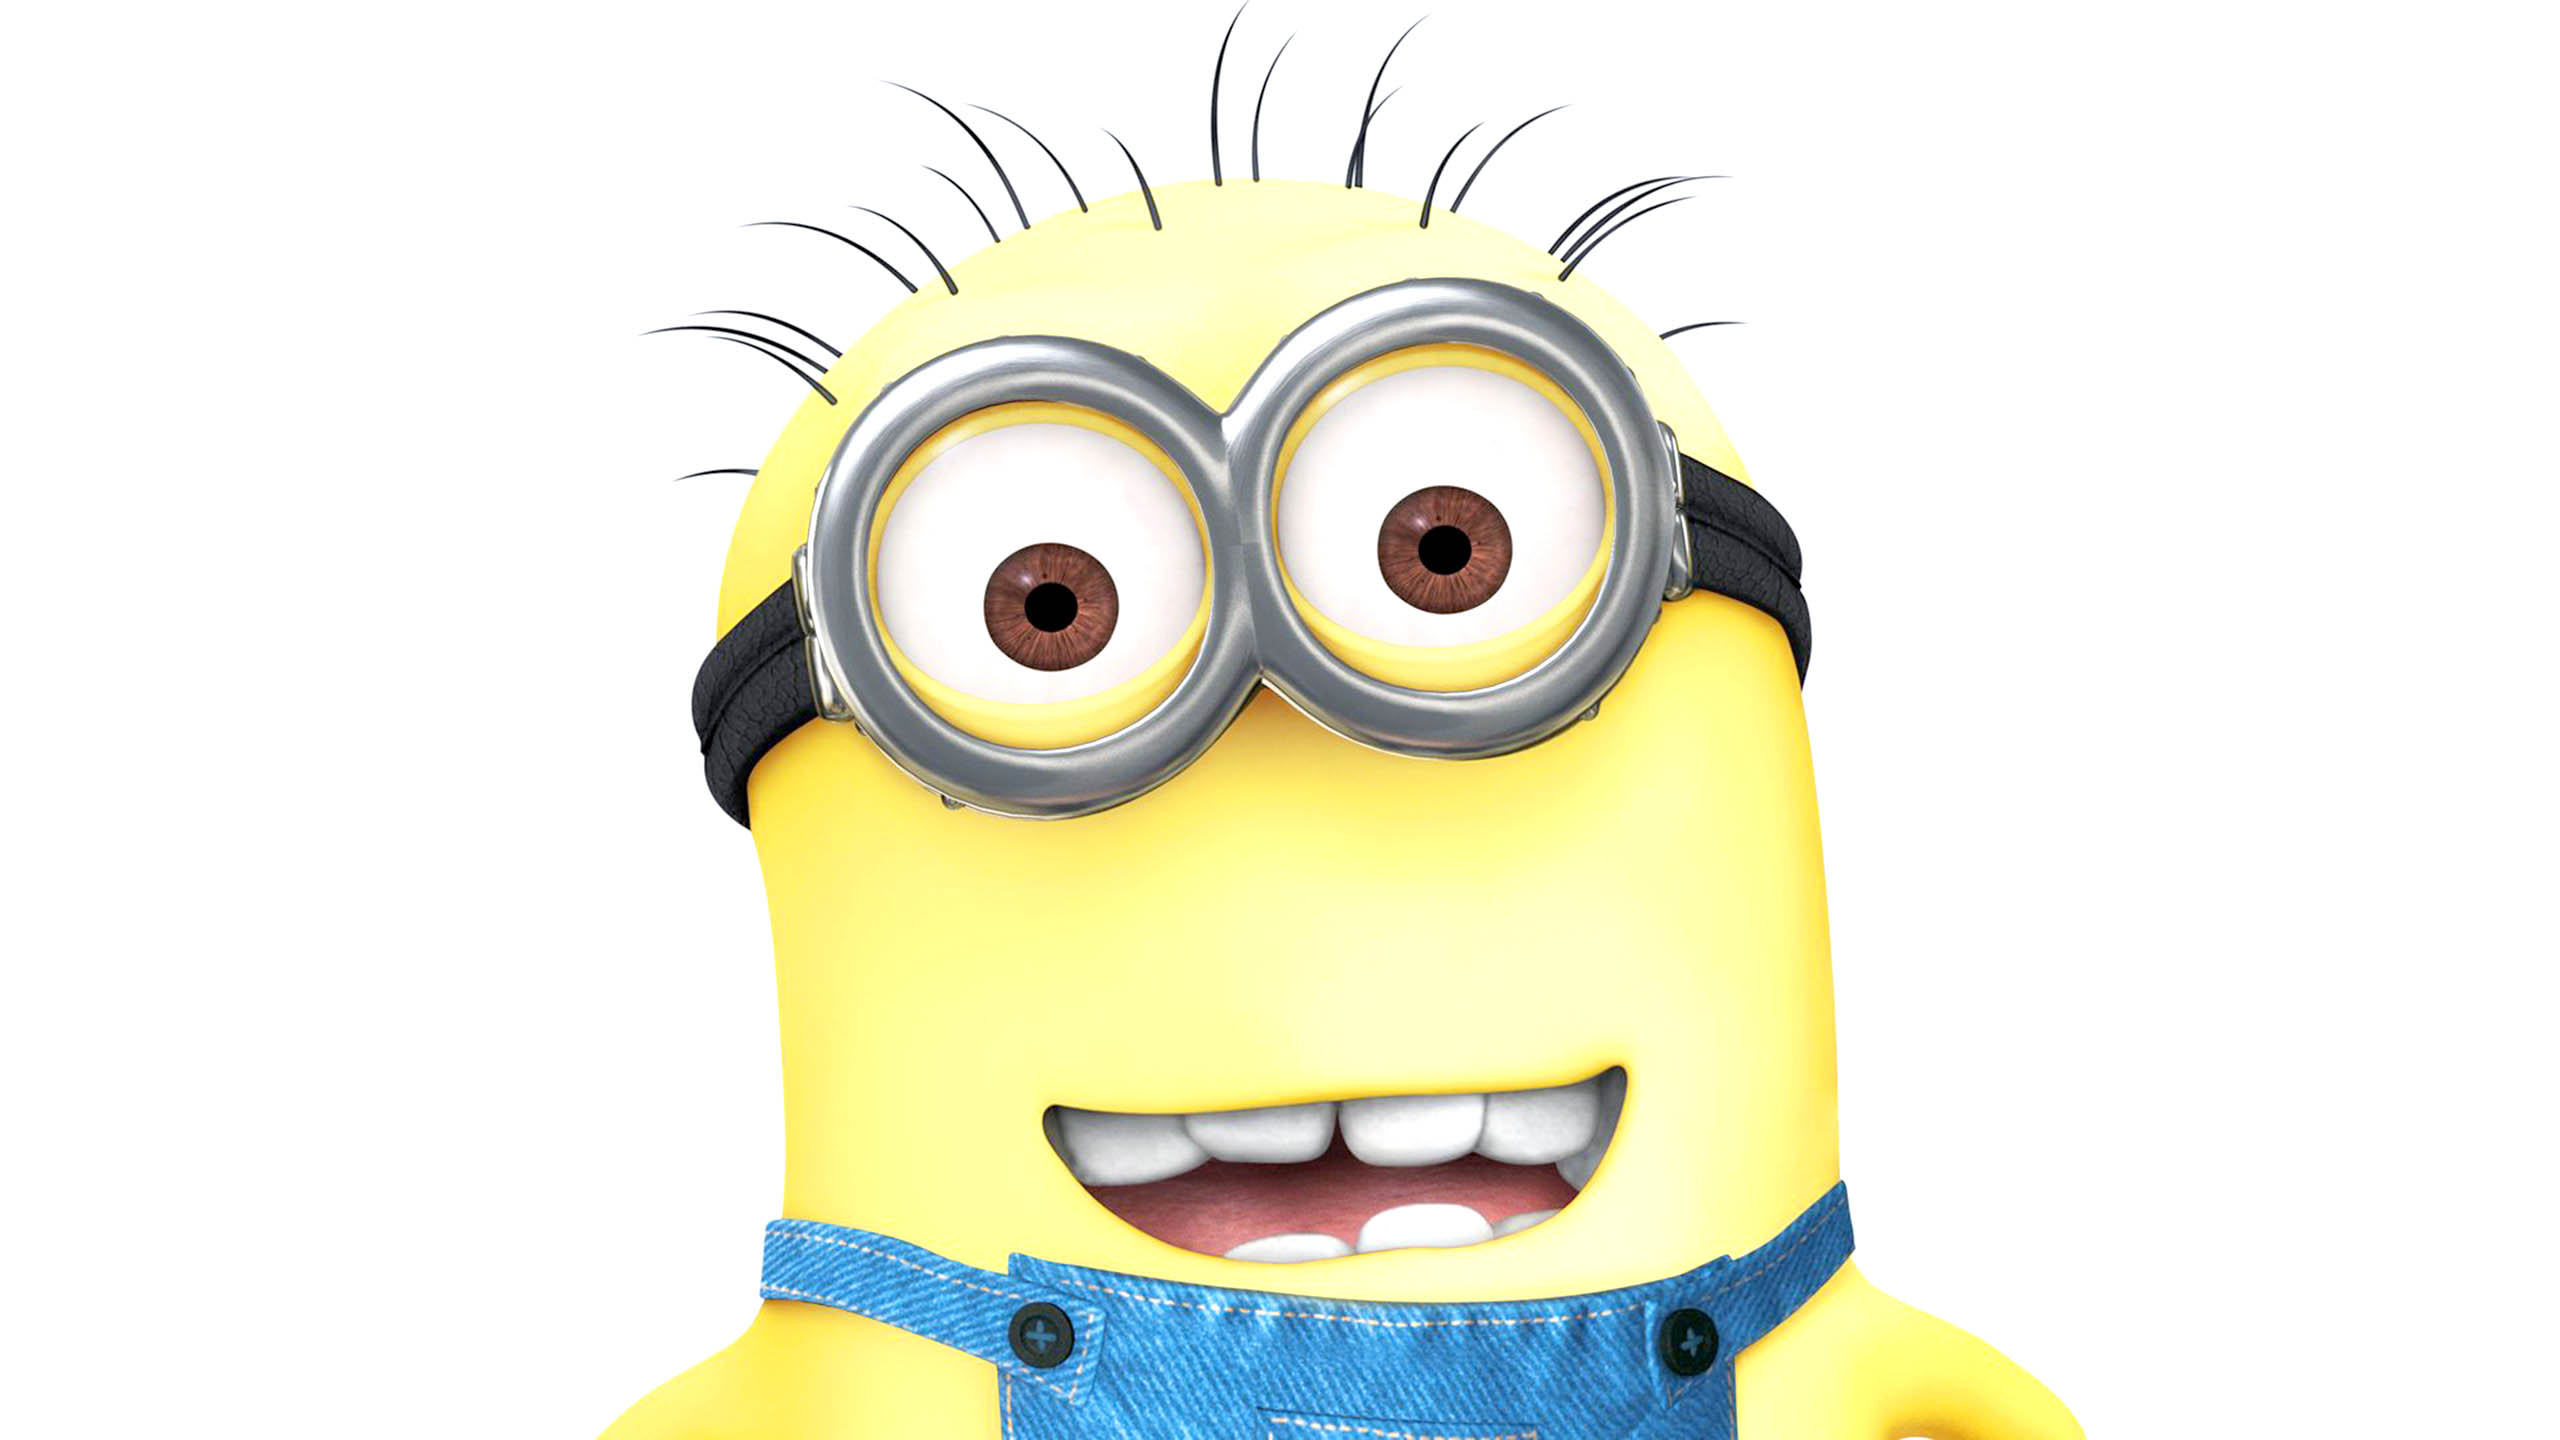 despicable-me-funny-minions-http-1080-net-despicable-me-funny-minions-html-wallpaper-wpc5804085